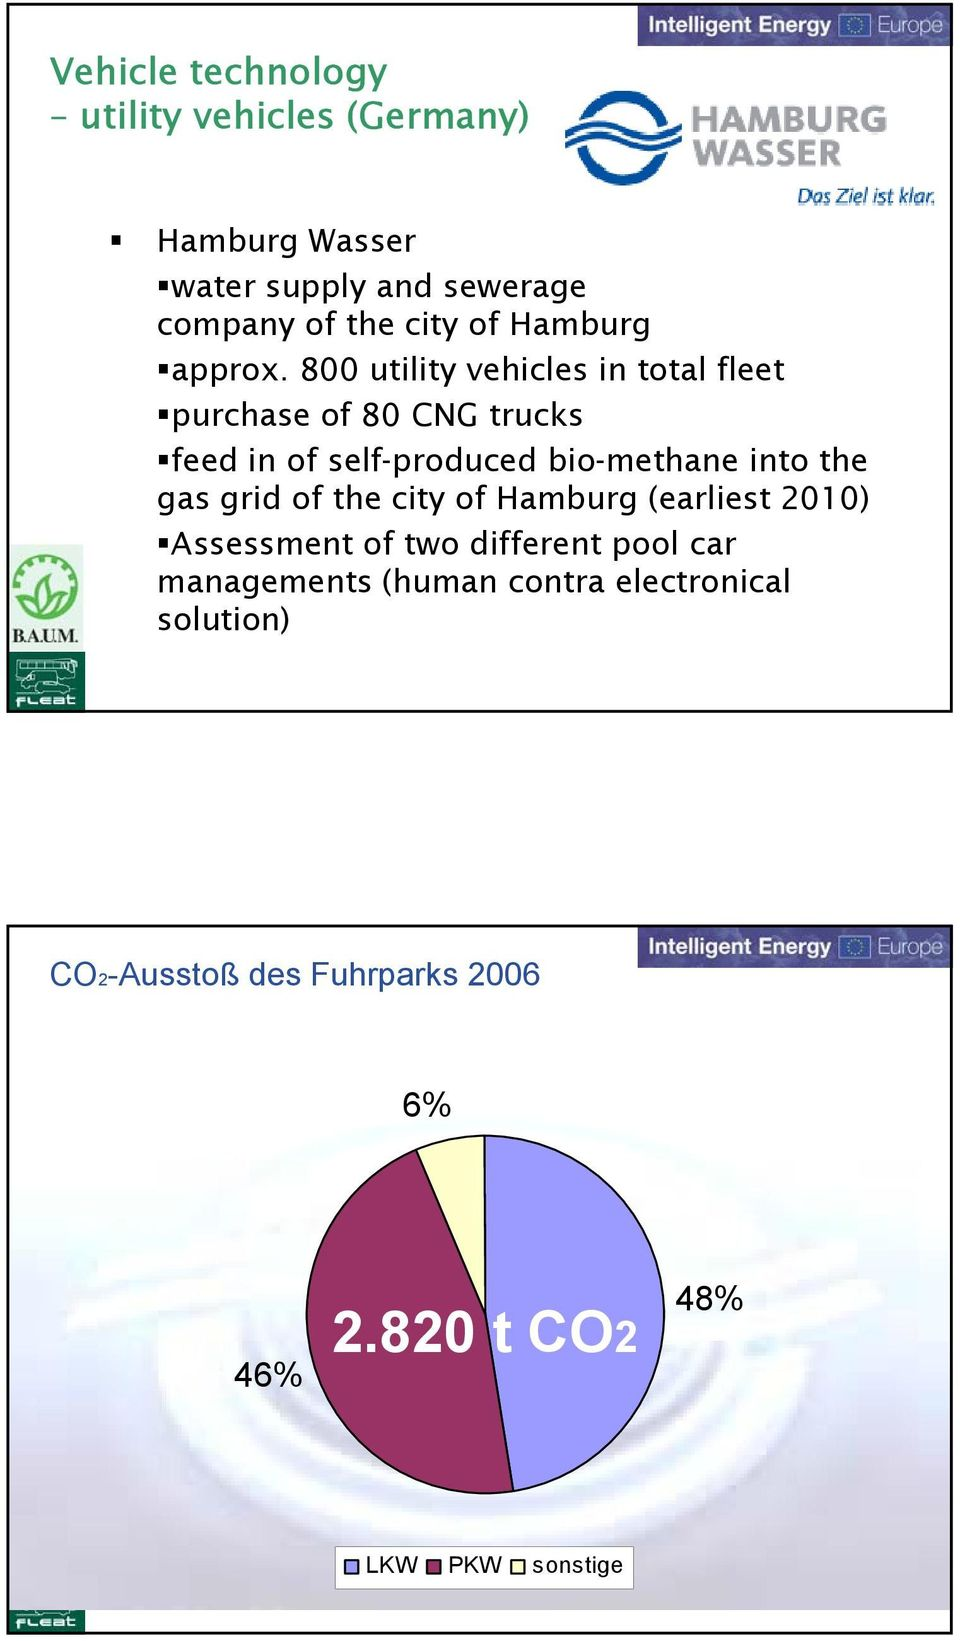 800 utility vehicles in total fleet purchase of 80 CNG trucks feed in of self-produced bio-methane into the